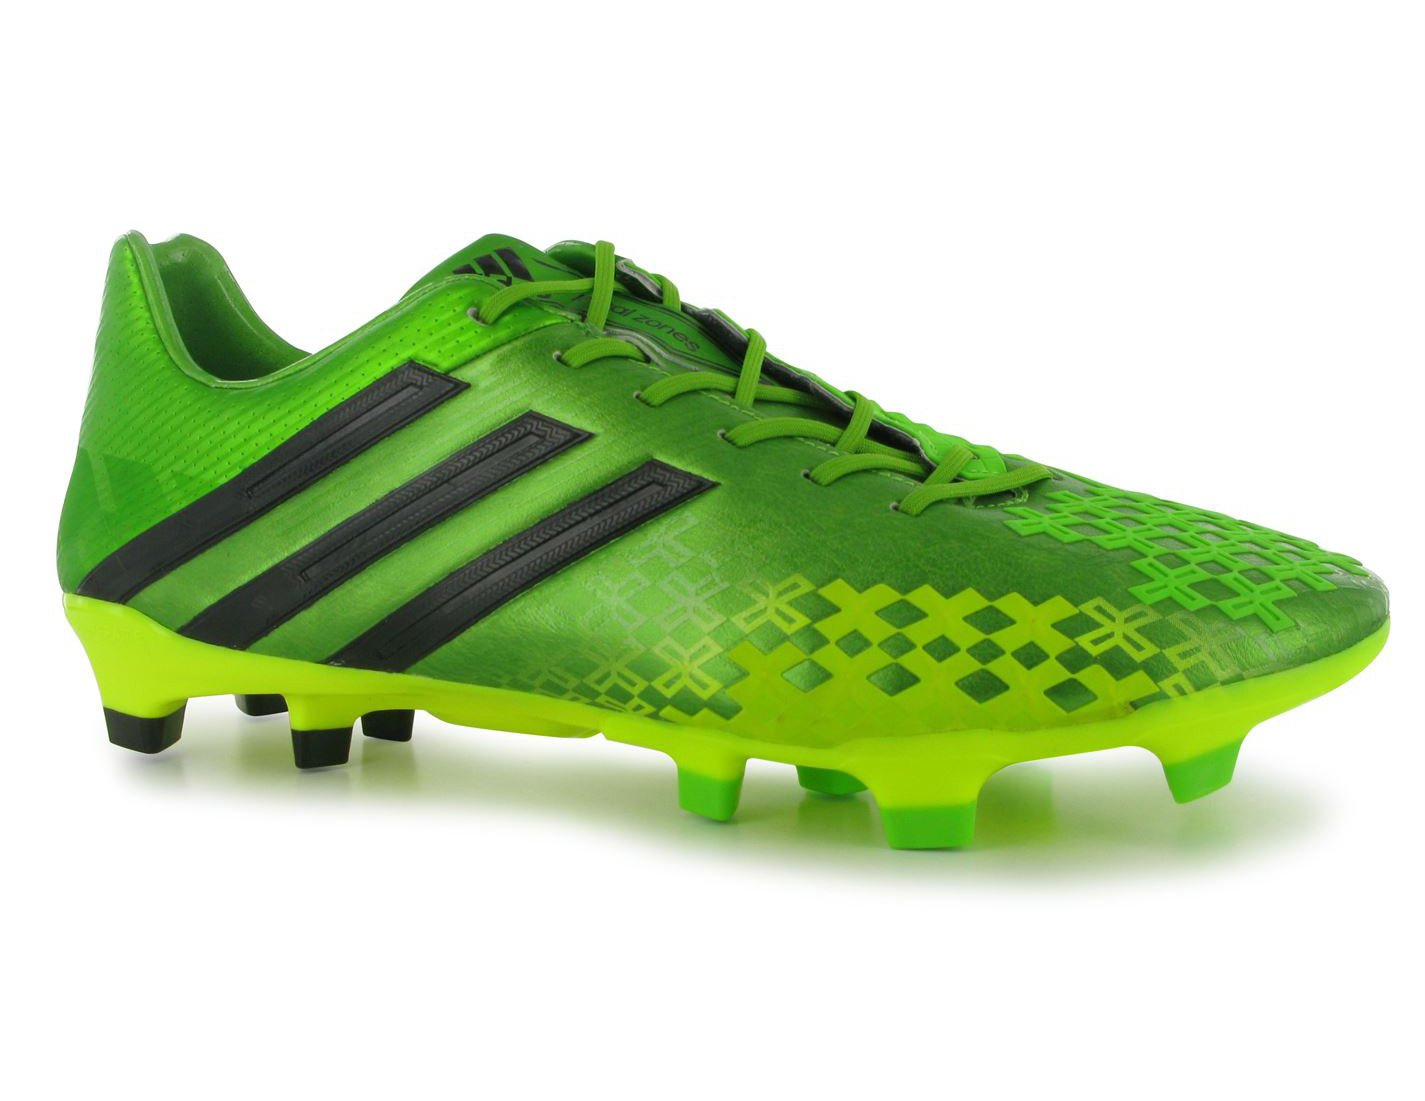 92a862f218e9 Adidas Predator Men s FG Neon Green Leather Moulded Stud Mouldies Football  Boots Soccer Cleats GAA Rugby .. Sizes 6 to 12  Amazon.co.uk  Sports    Outdoors